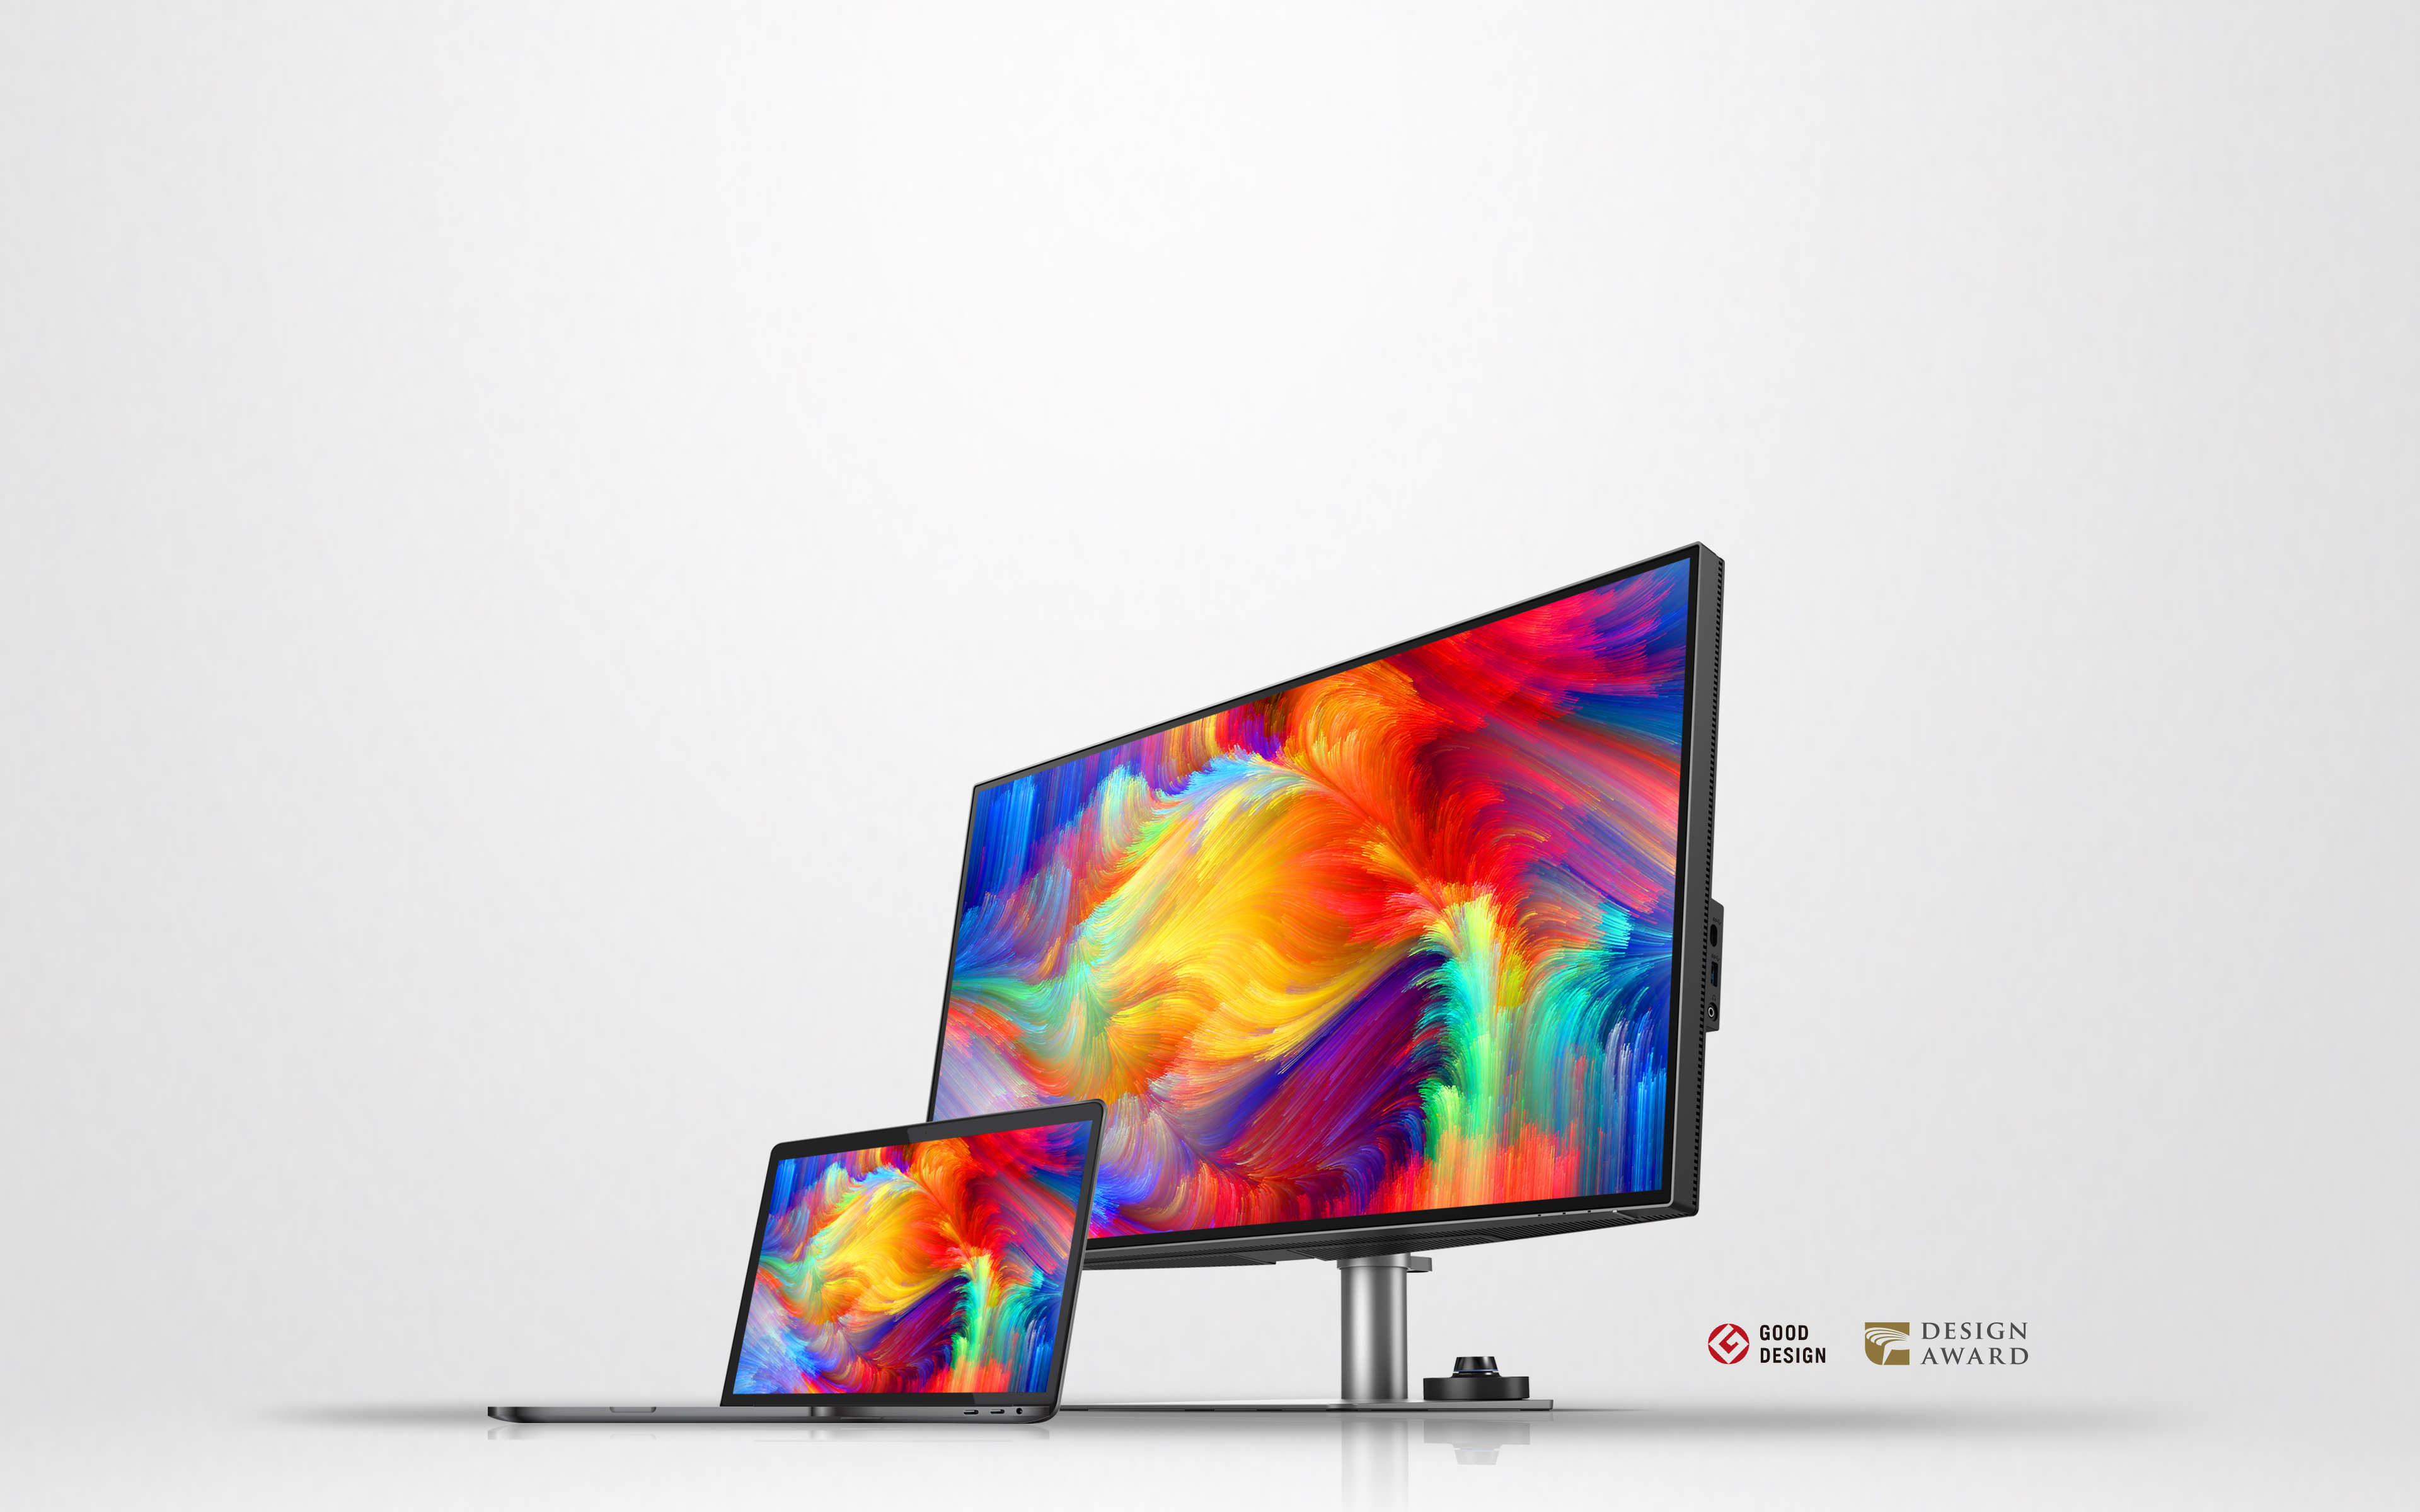 BenQ 4K USB-C Monitor for Macbook Pro PD3220U comes with an upgraded color to satisfy the needs of the designers.